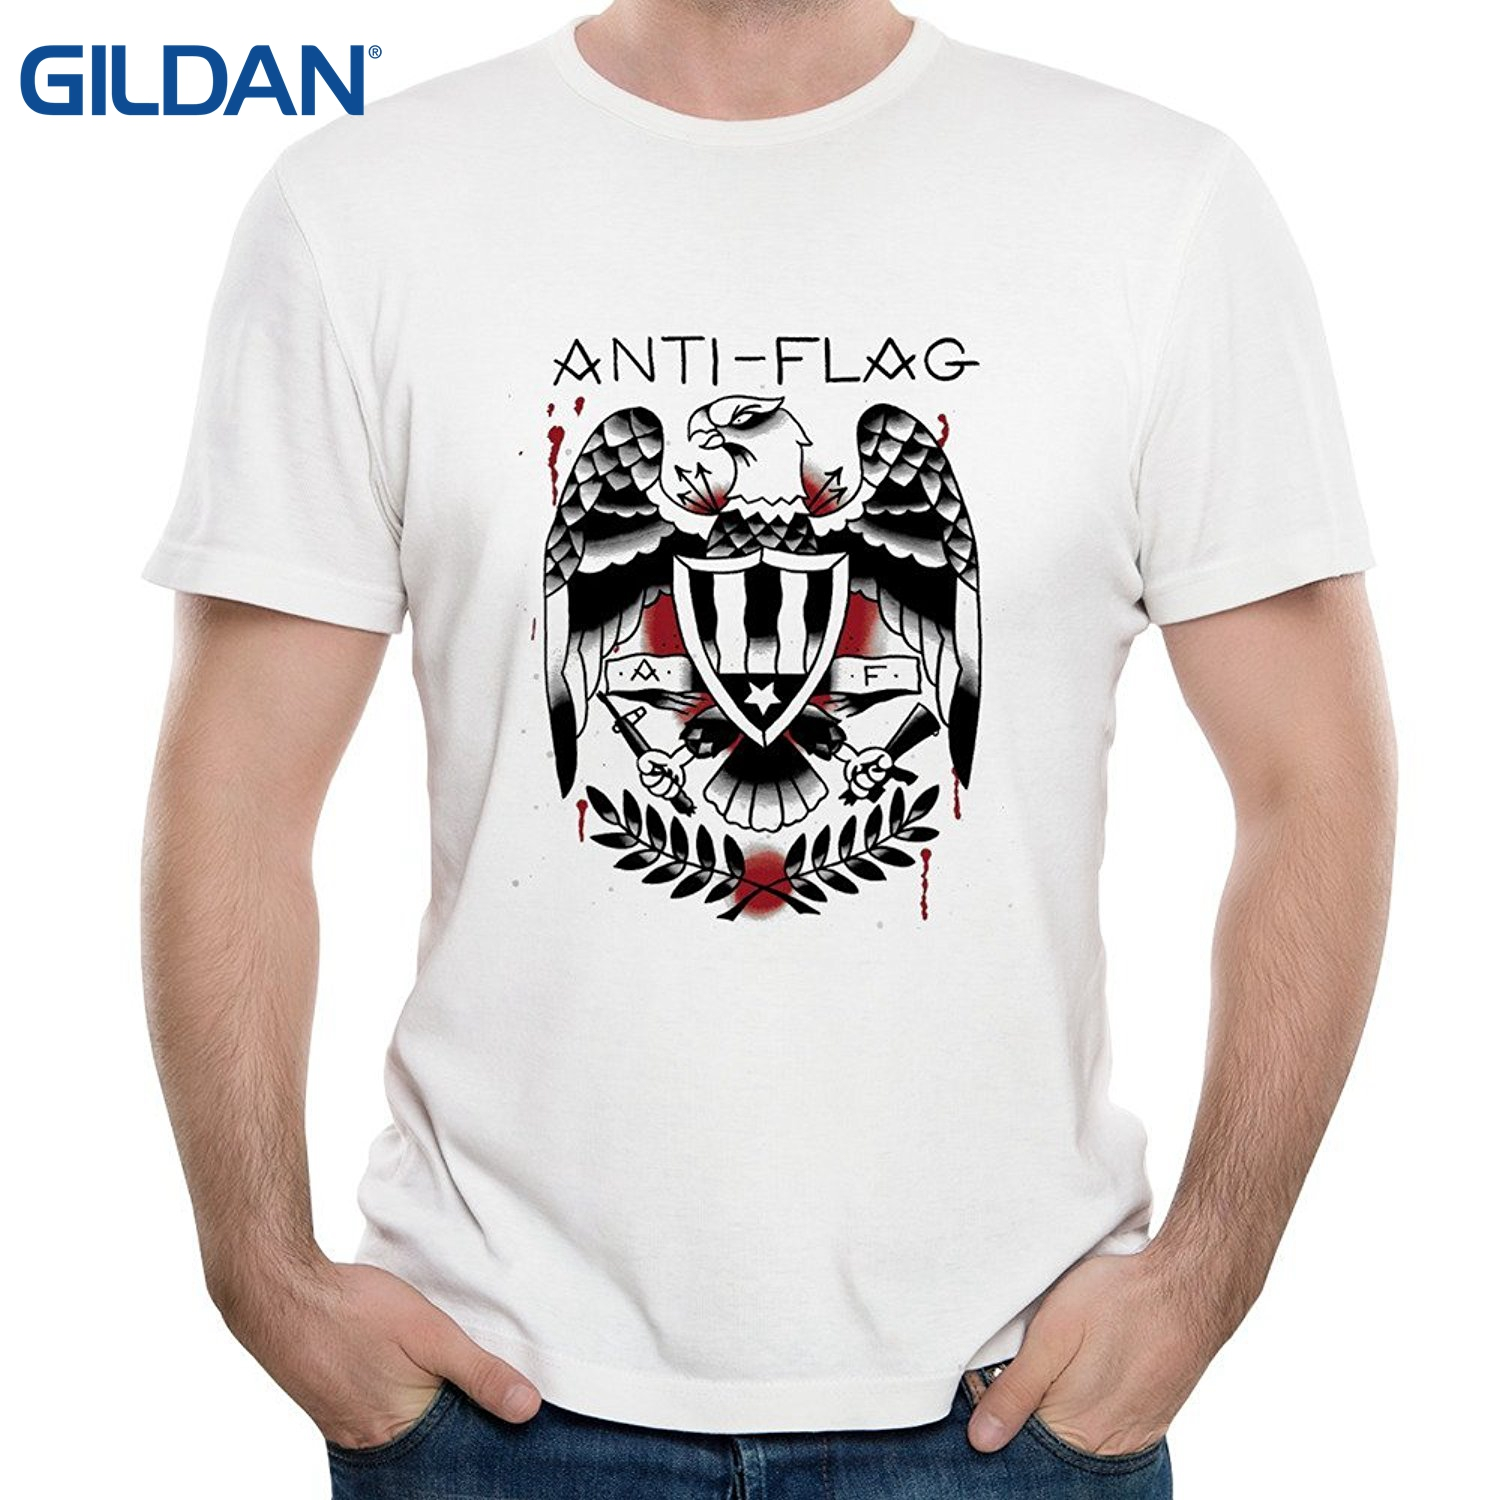 Design your own t-shirt brand